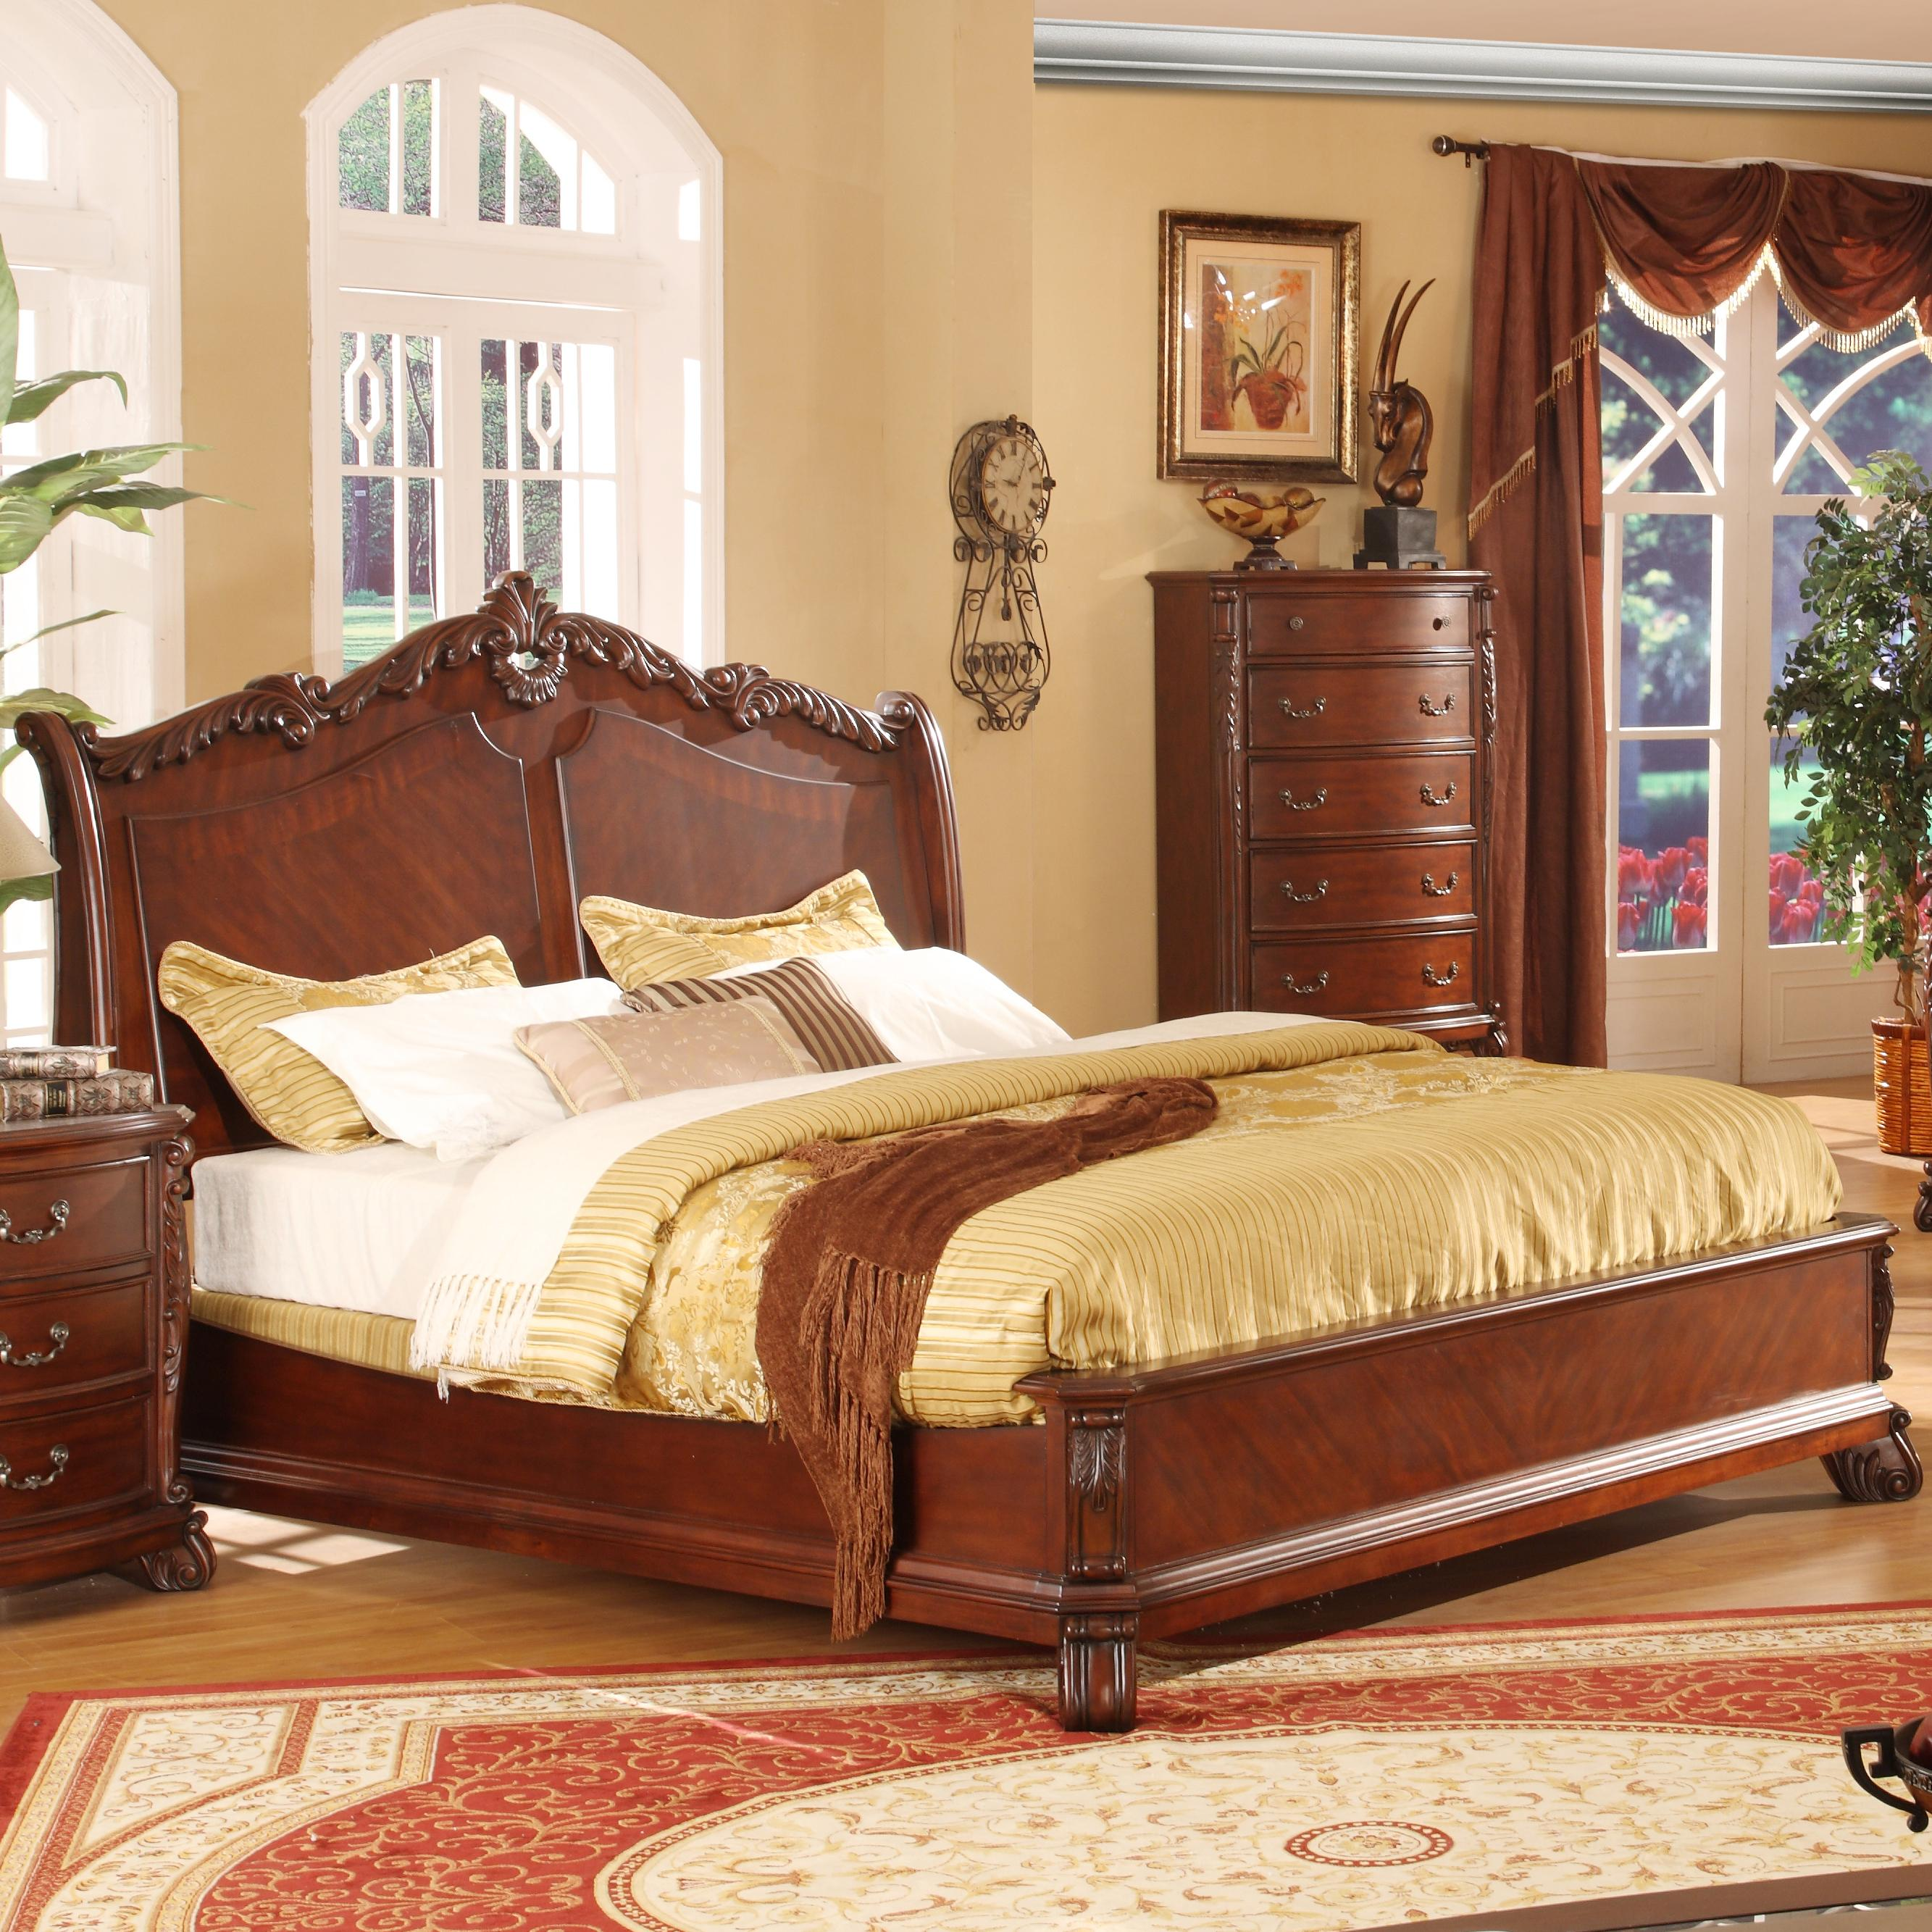 Lifestyle 9642 Queen Panel Bed - Item Number: C9642A-QP0-XXCH+QX3+QXF+QXP